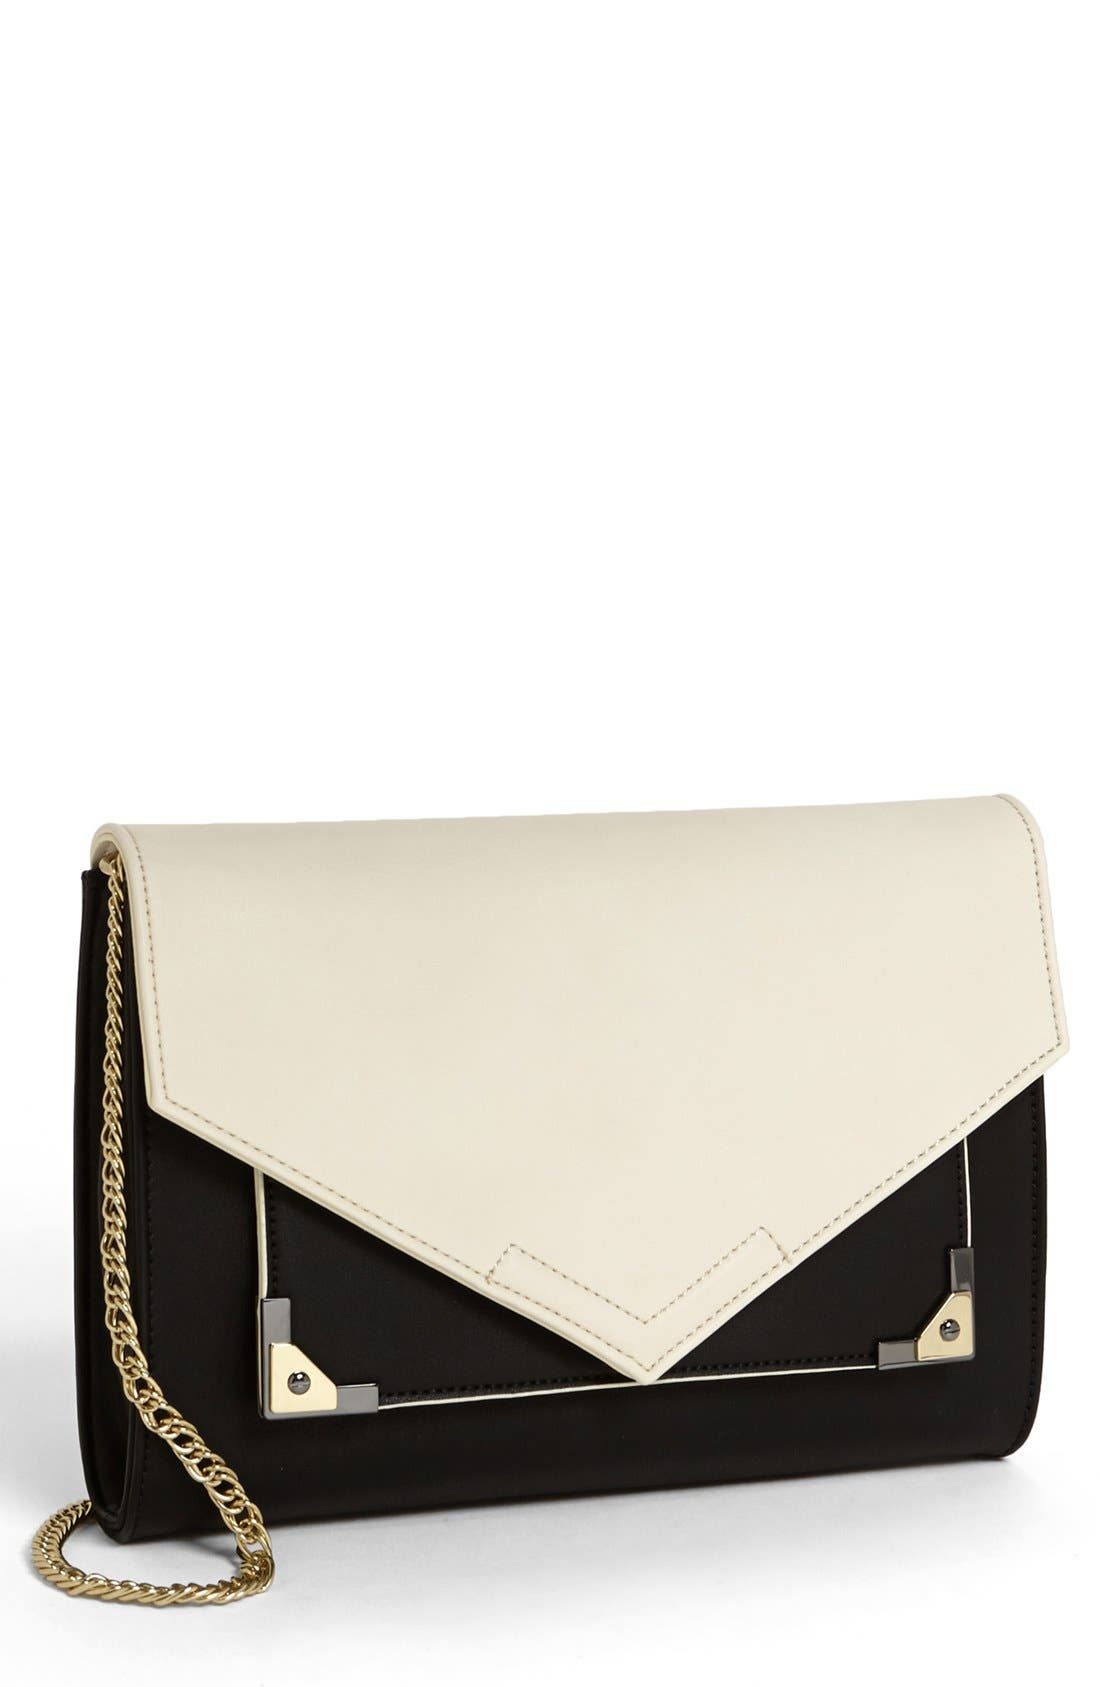 Main Image - Danielle Nicole 'Jaida' Faux Leather Clutch